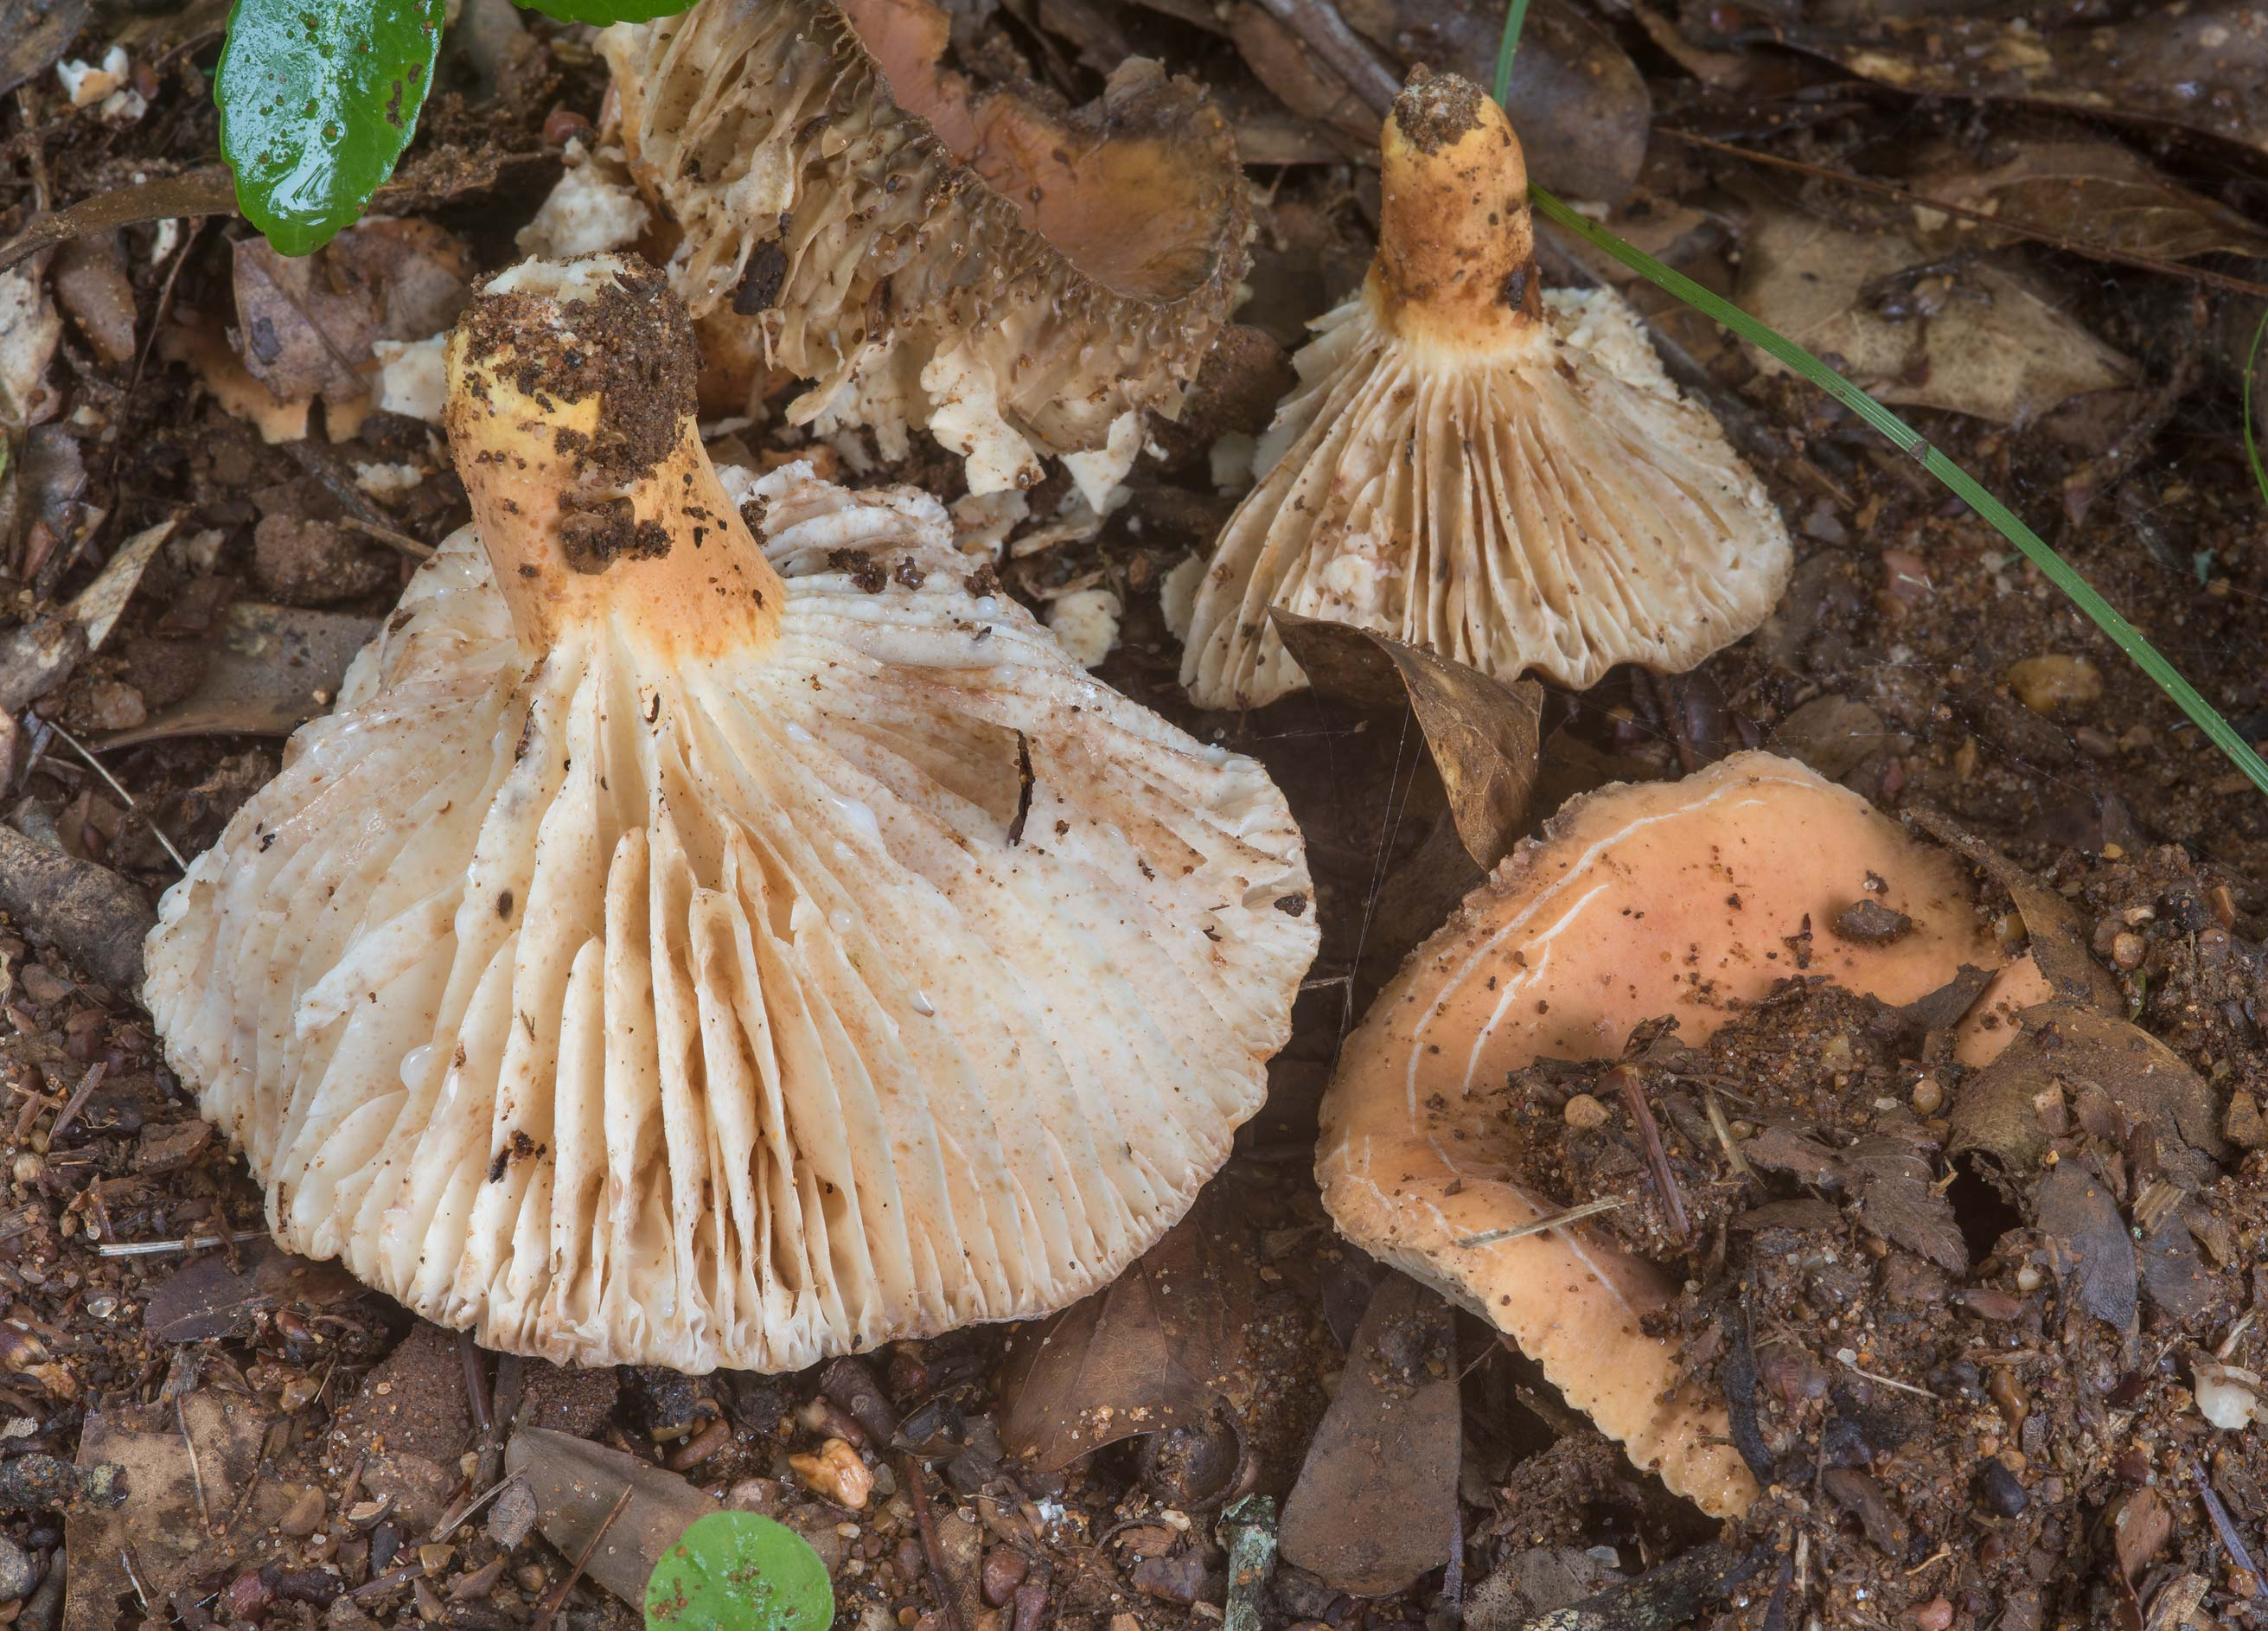 Milkcap mushrooms Lactifluus hygrophoroides in Lick Creek Park. College Station, Texas